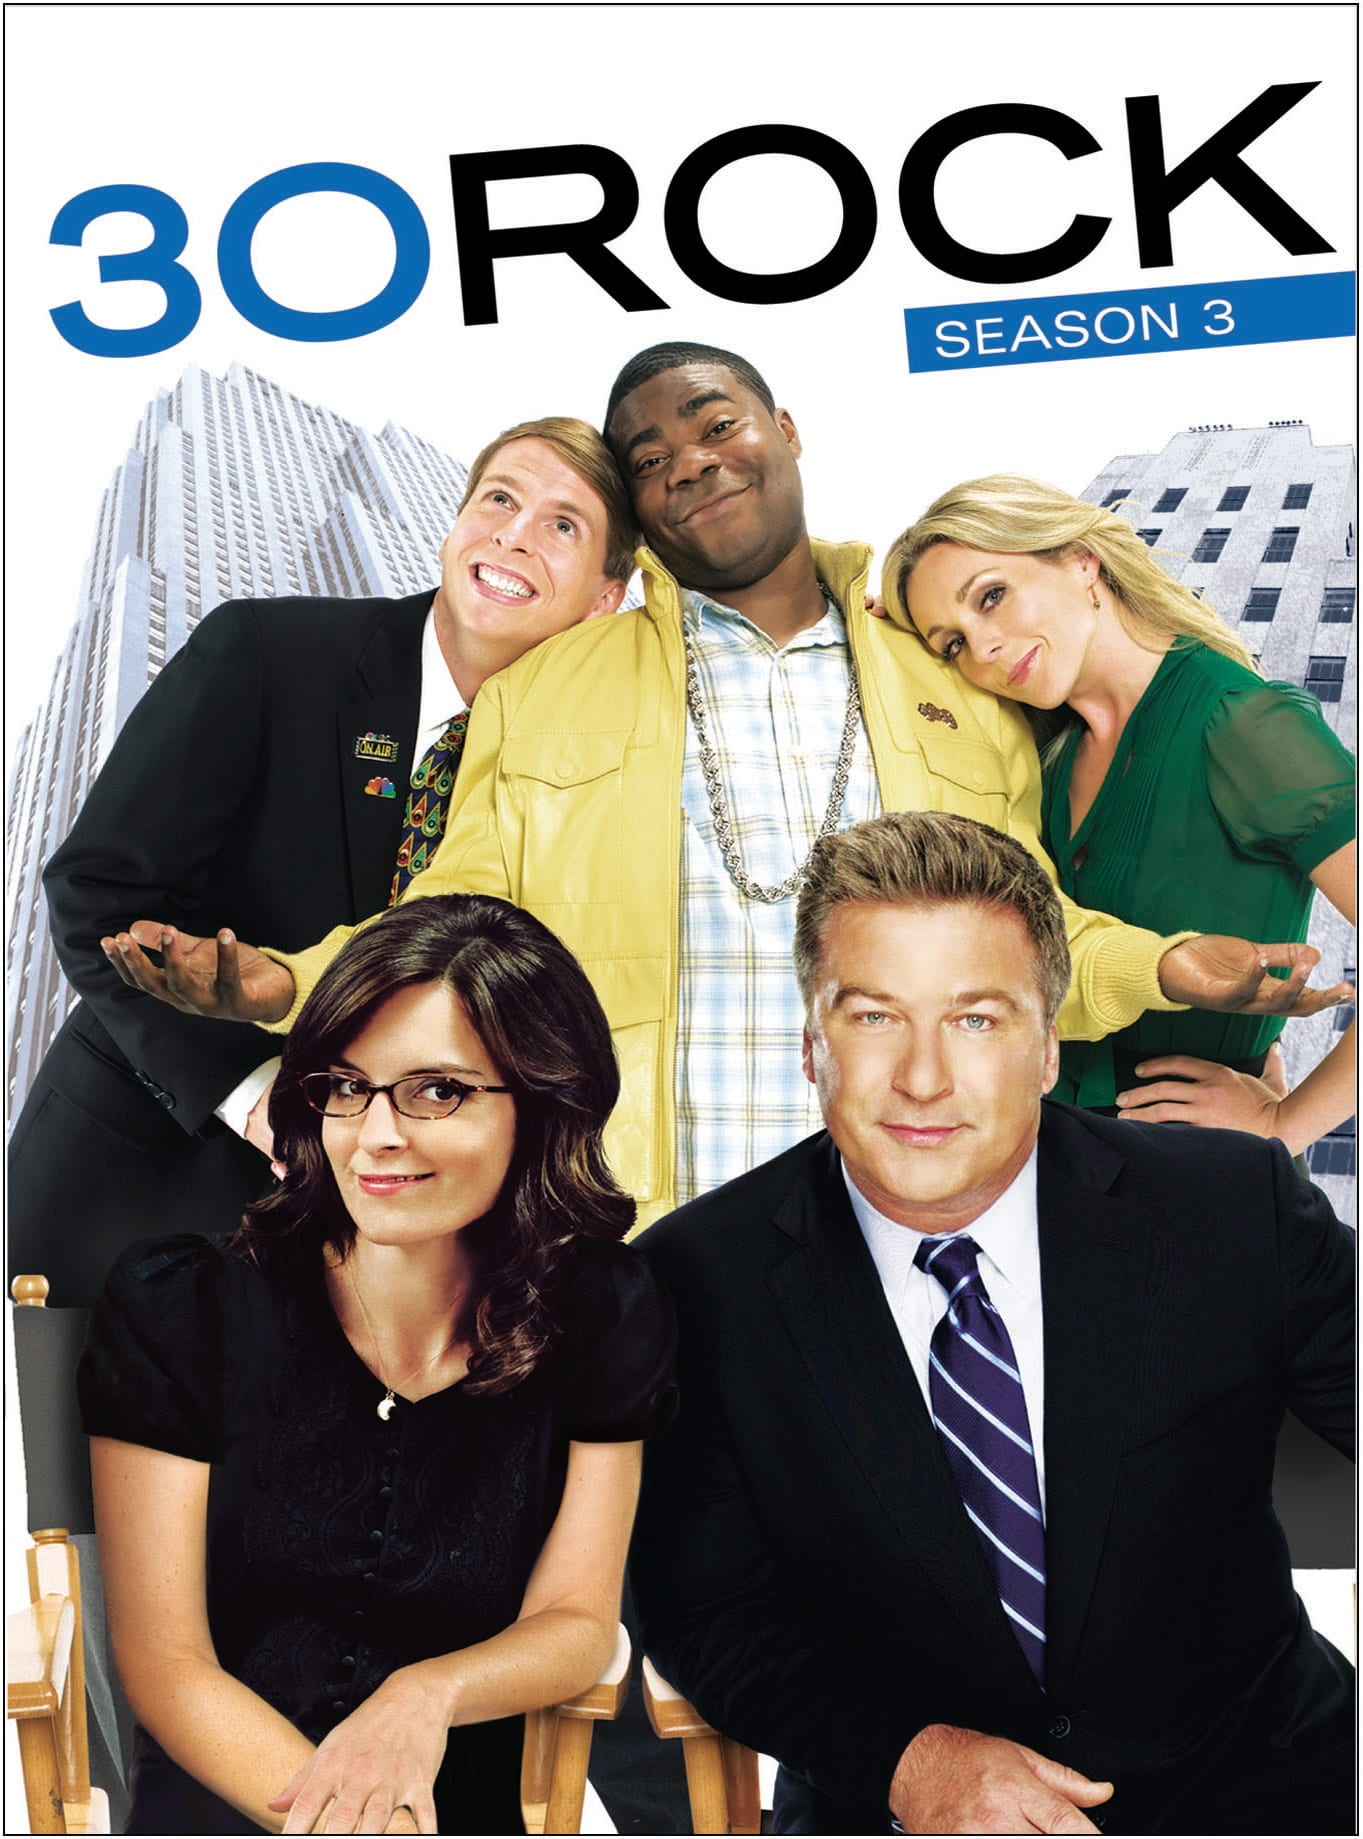 30 Rock: Season 3 [DVD]